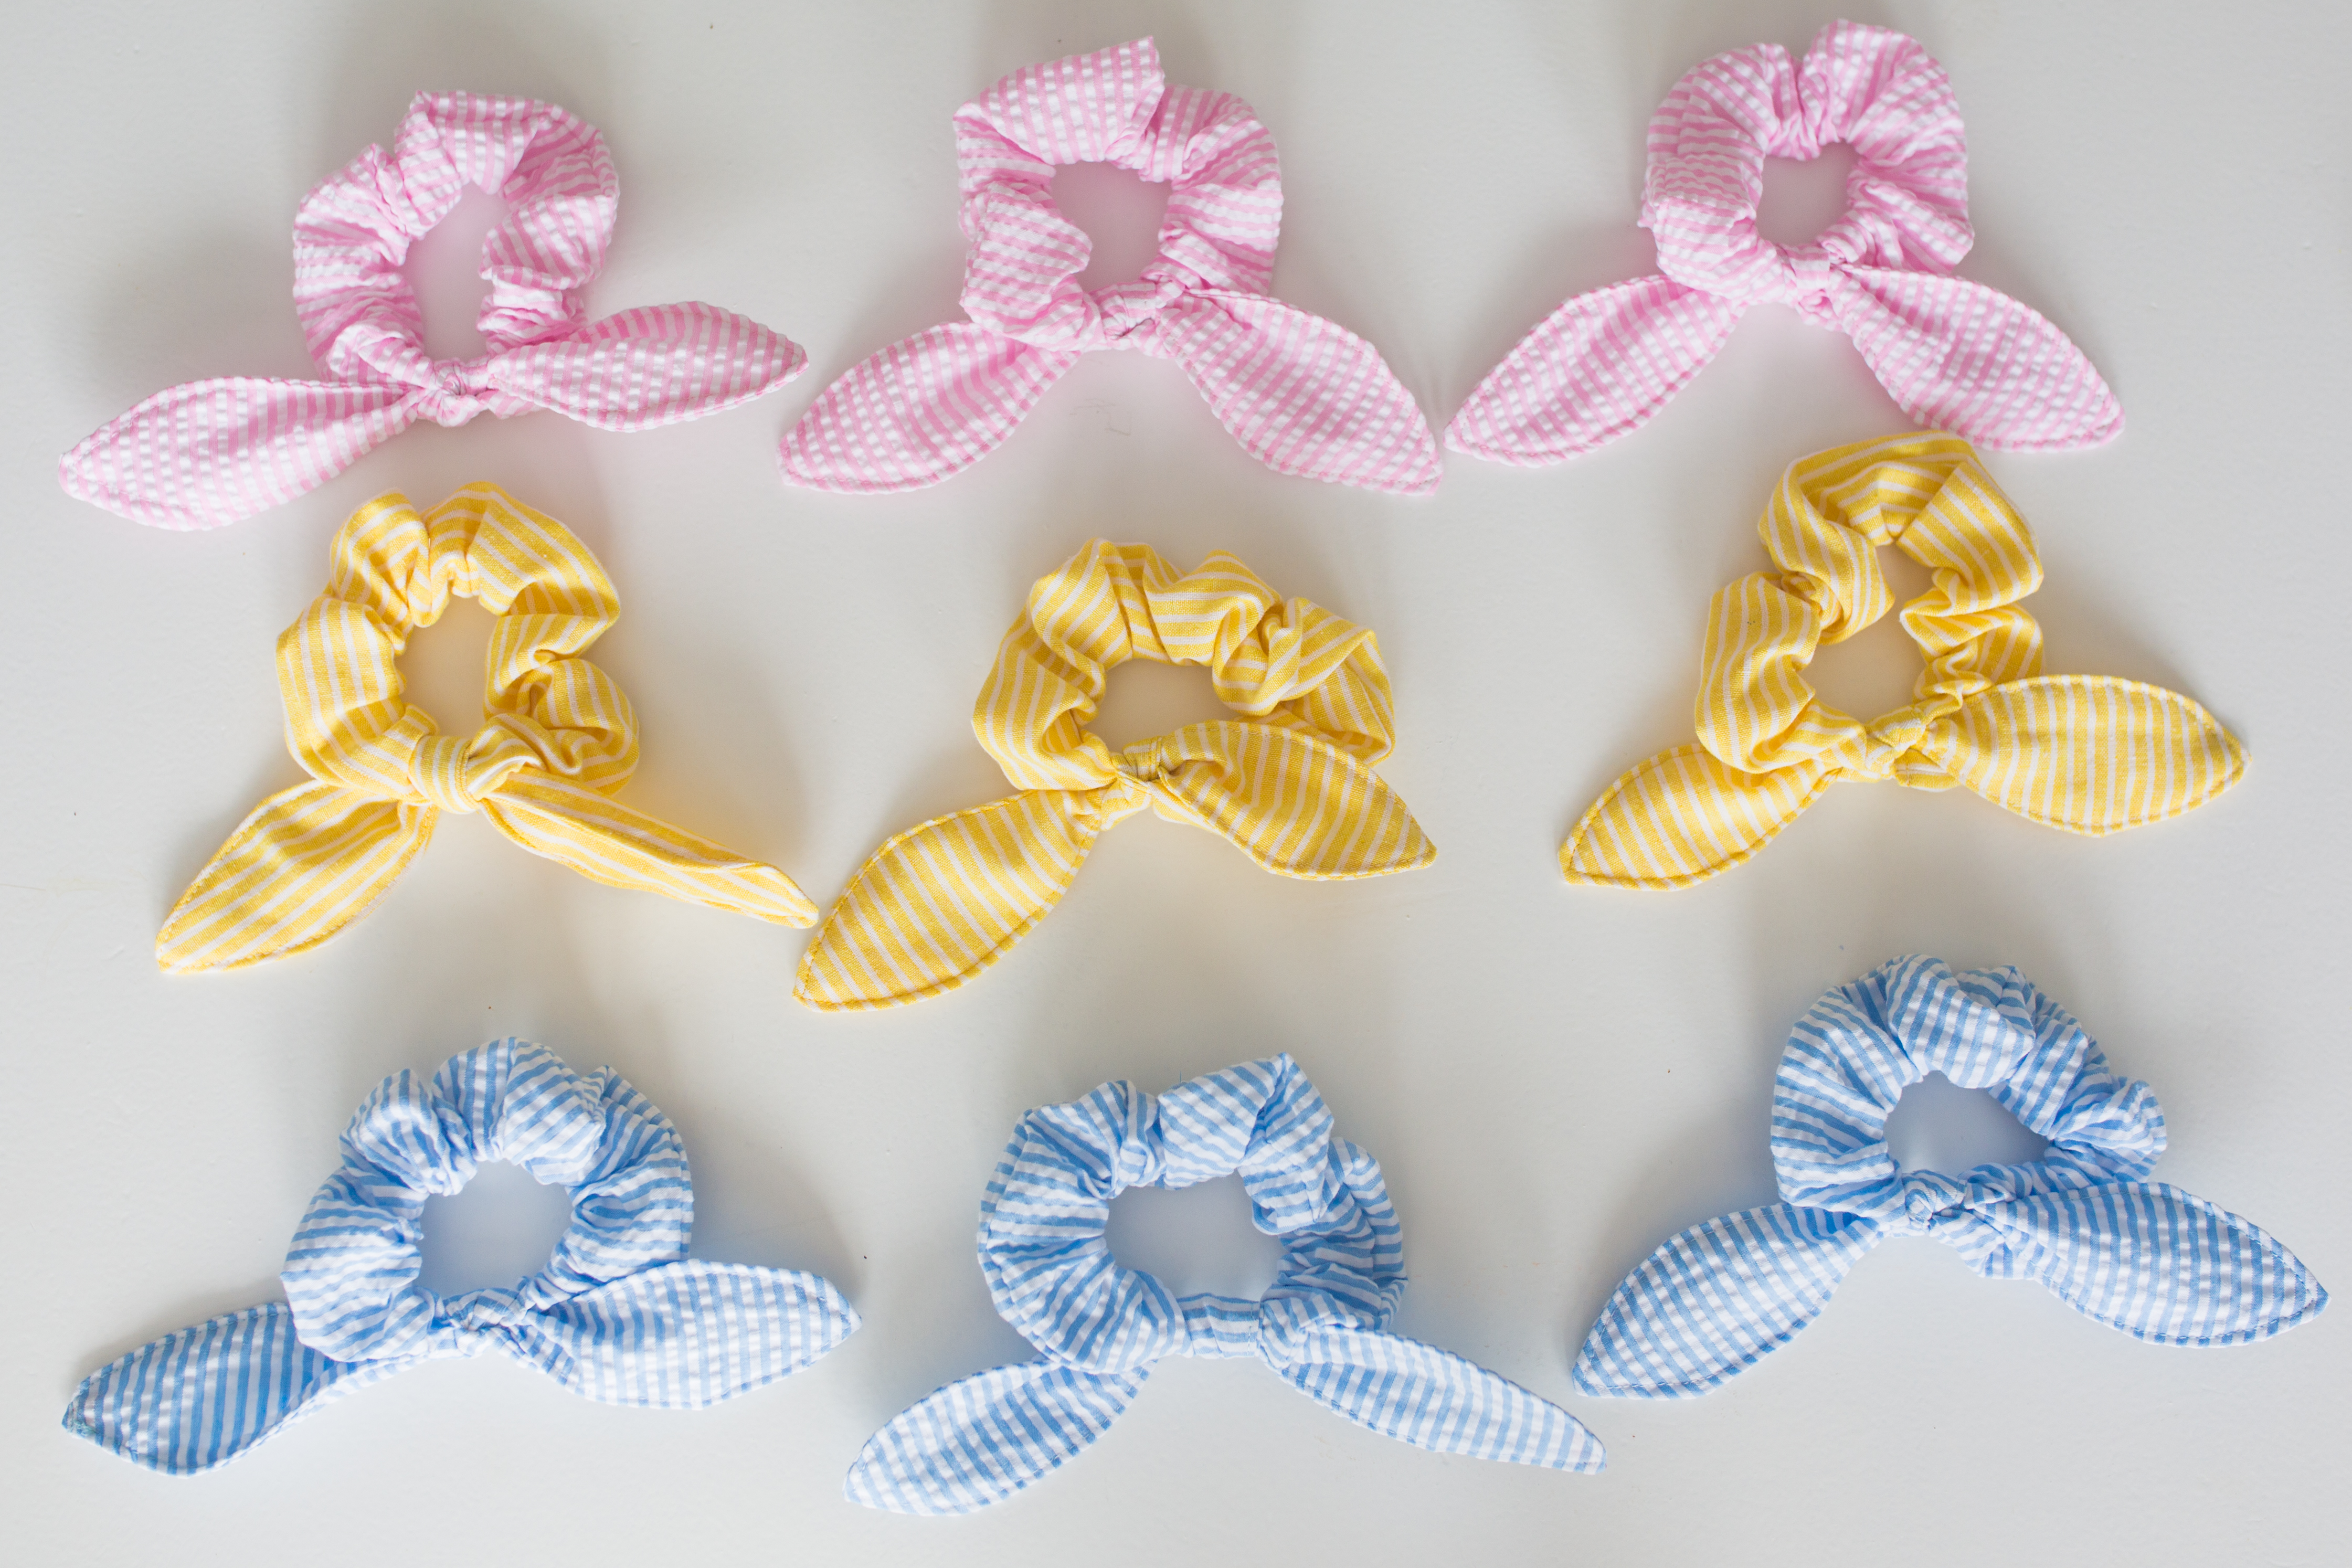 Introducing Sunshine Style Bow Hair Ties / Bow Hair Scrunchie / Hair Accessories / Coastal Style / How to Wear a Scrunchie / Handmade Srunchie - Sunshine Style, a Florida Fashion, Lifestyle and Travel Blog by Katie